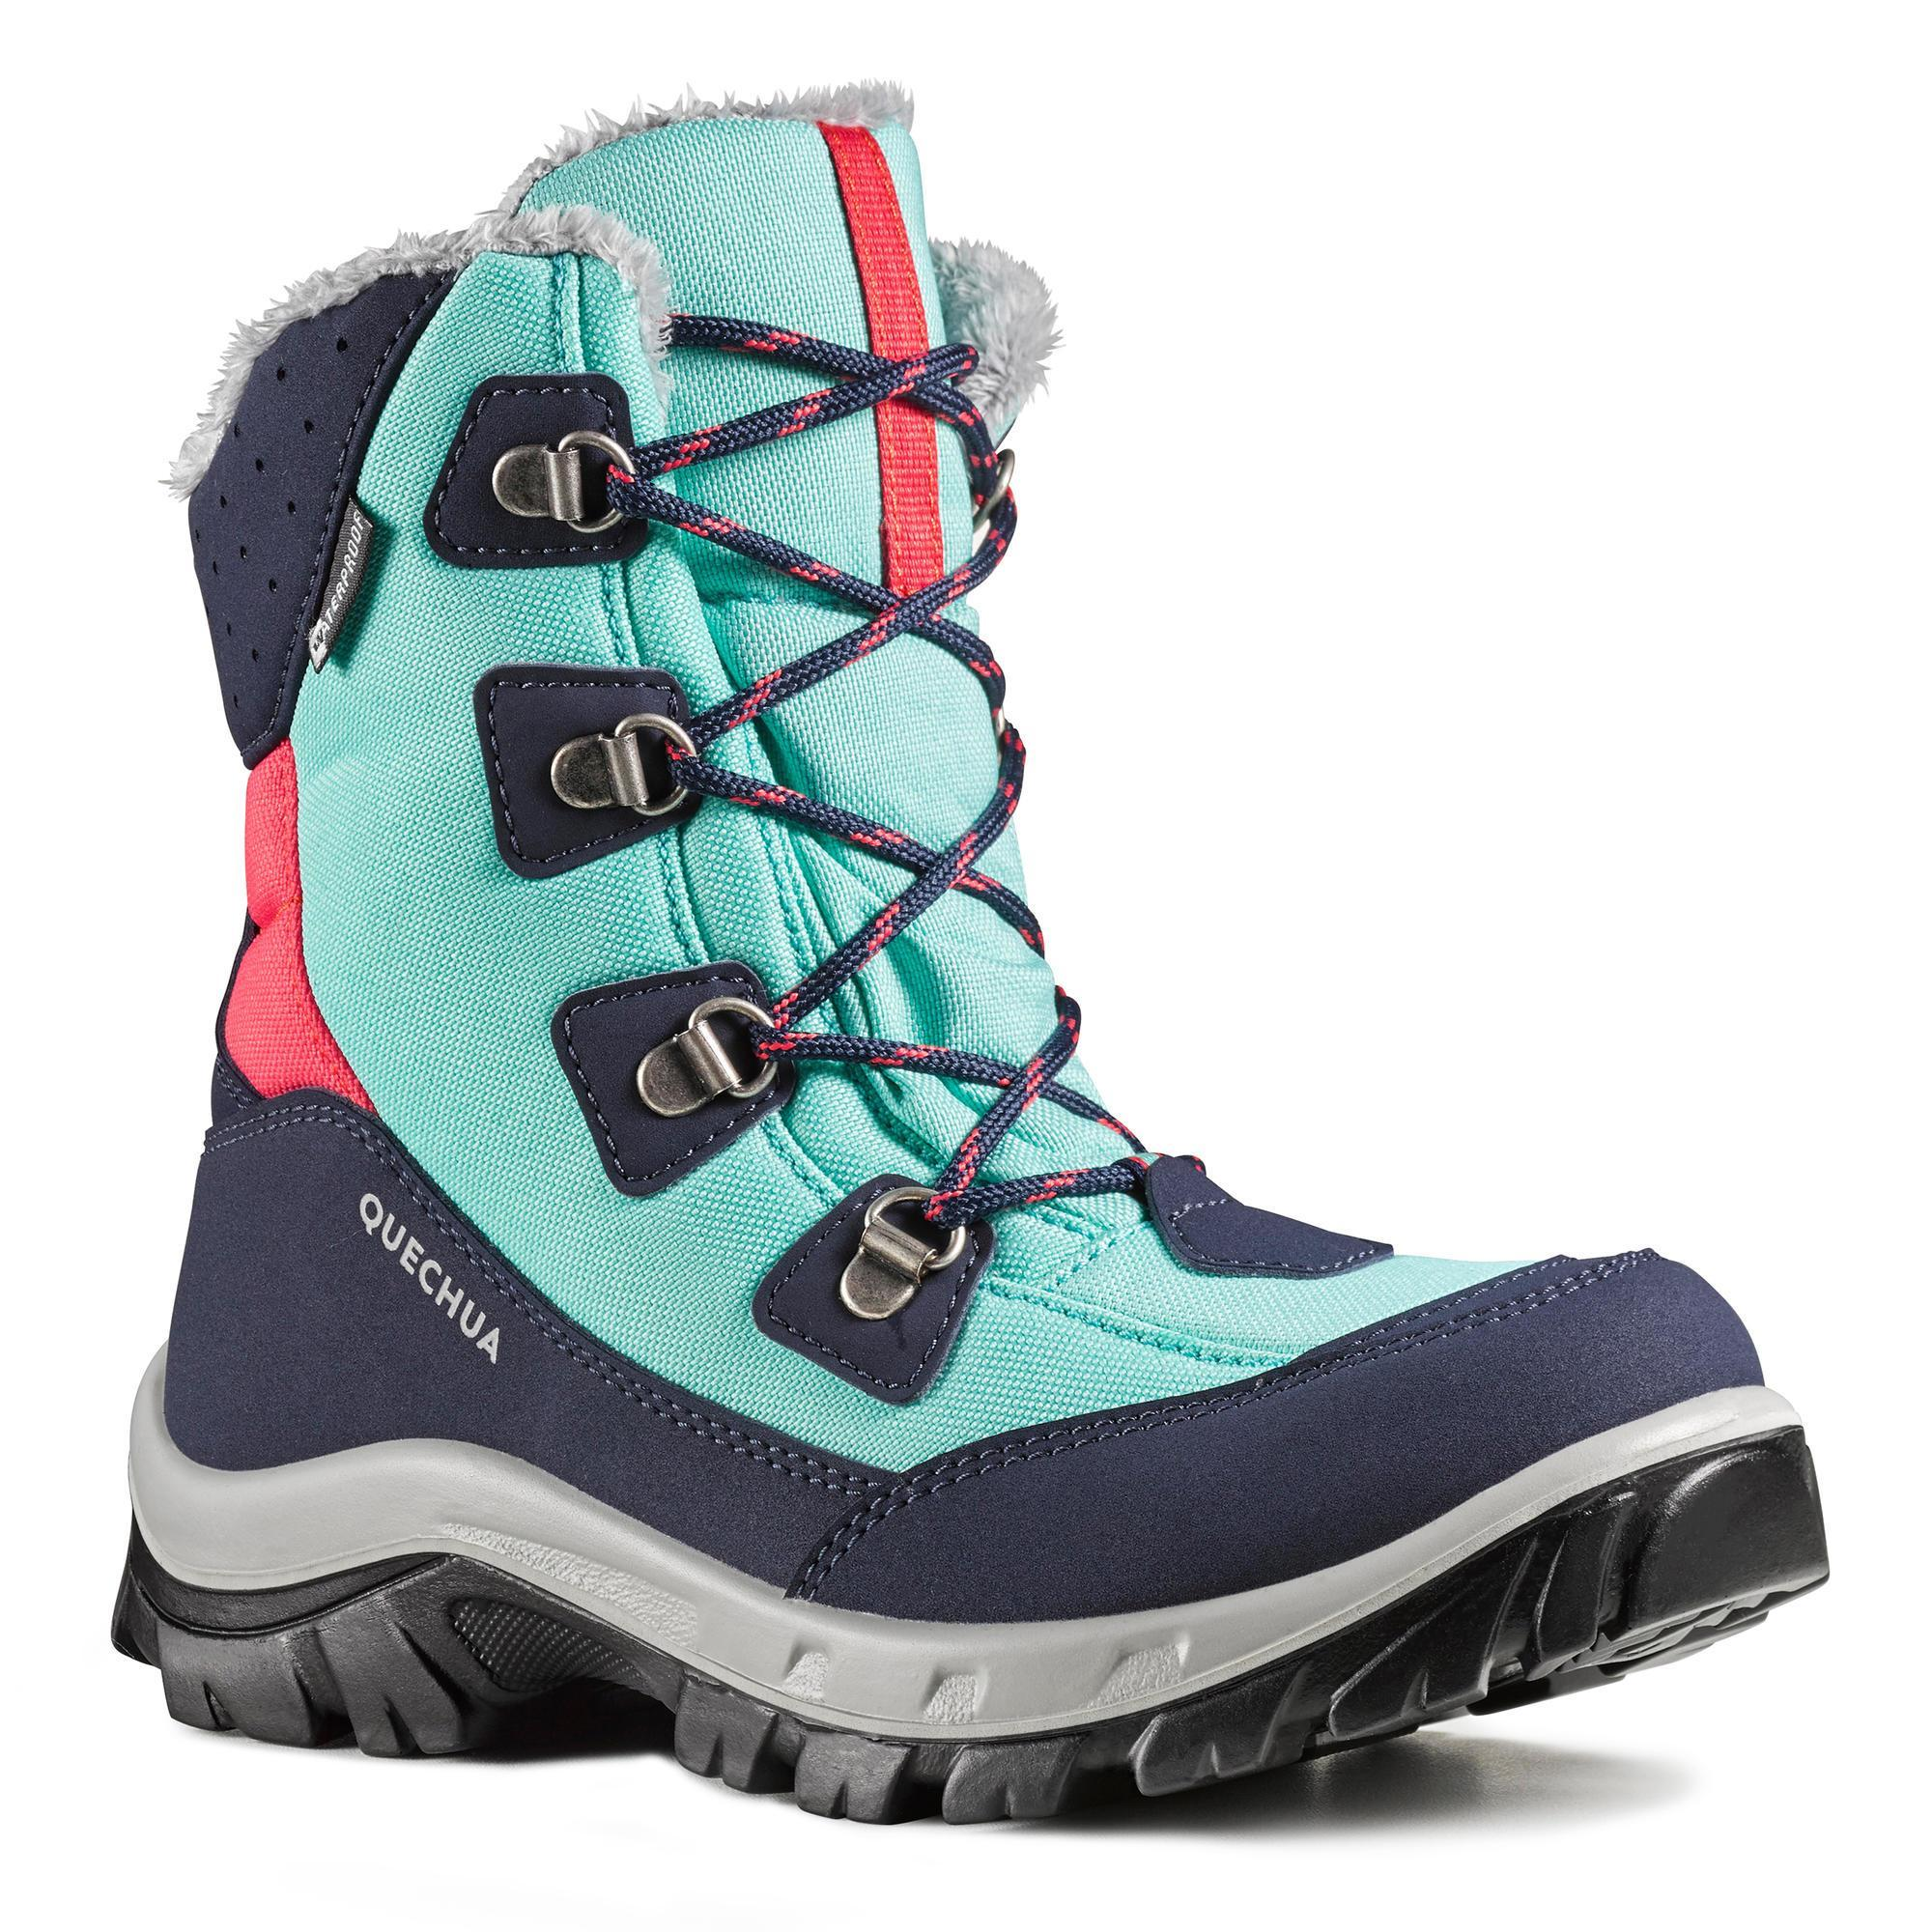 WATERPROOF SNOW HIKING BOOTS SIZE